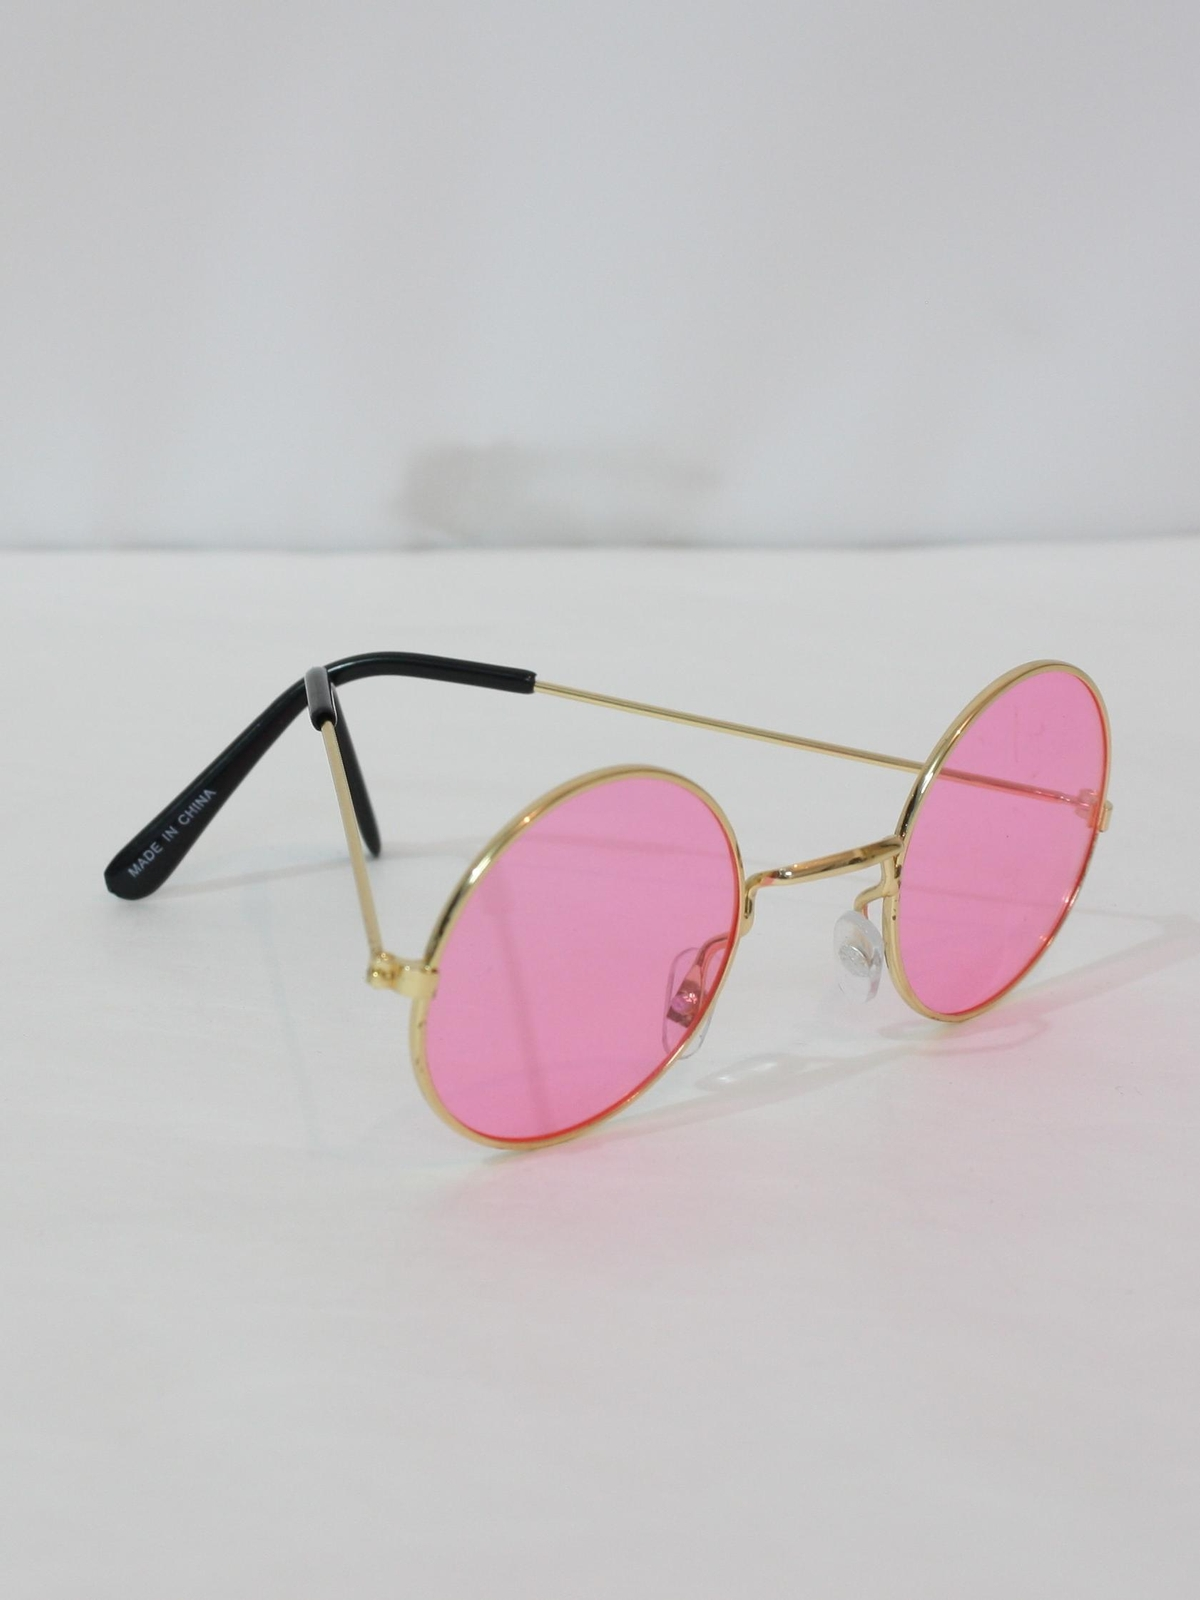 Vintage 70s Glasses 70s Style Made Recently Round